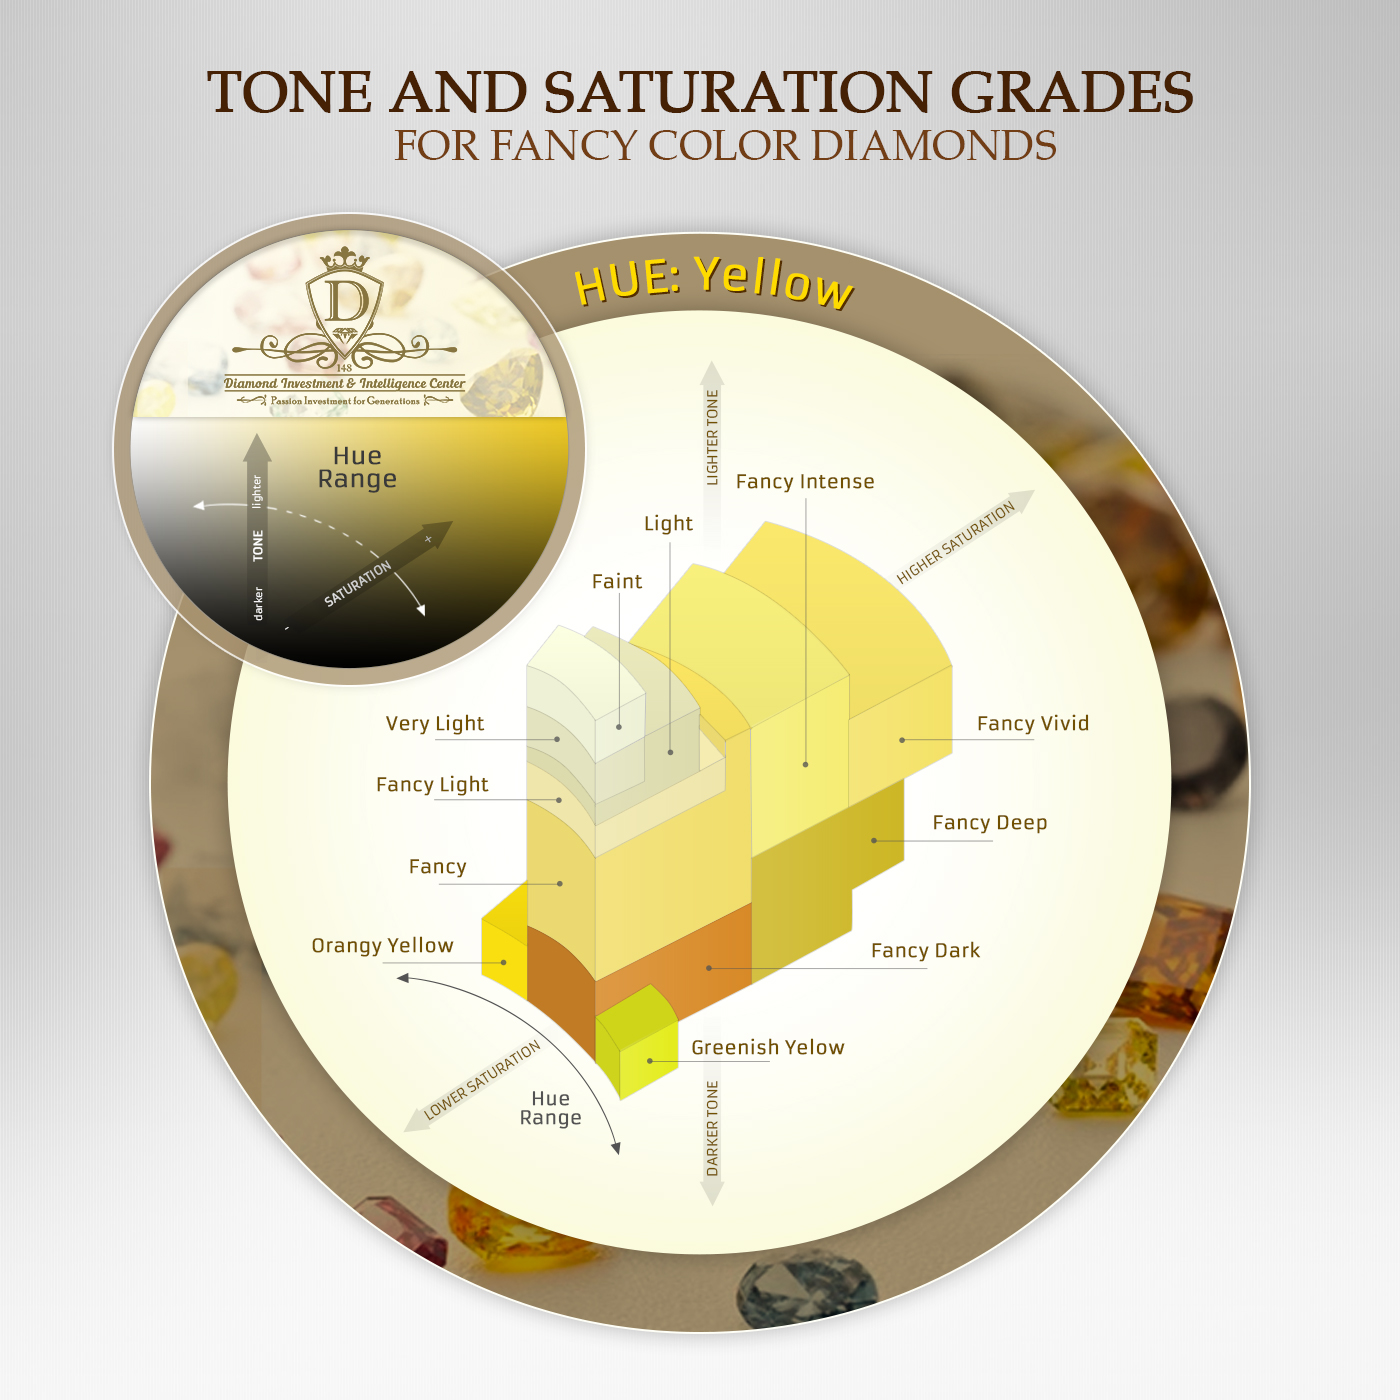 Yellow Diamonds tone and saturation grades